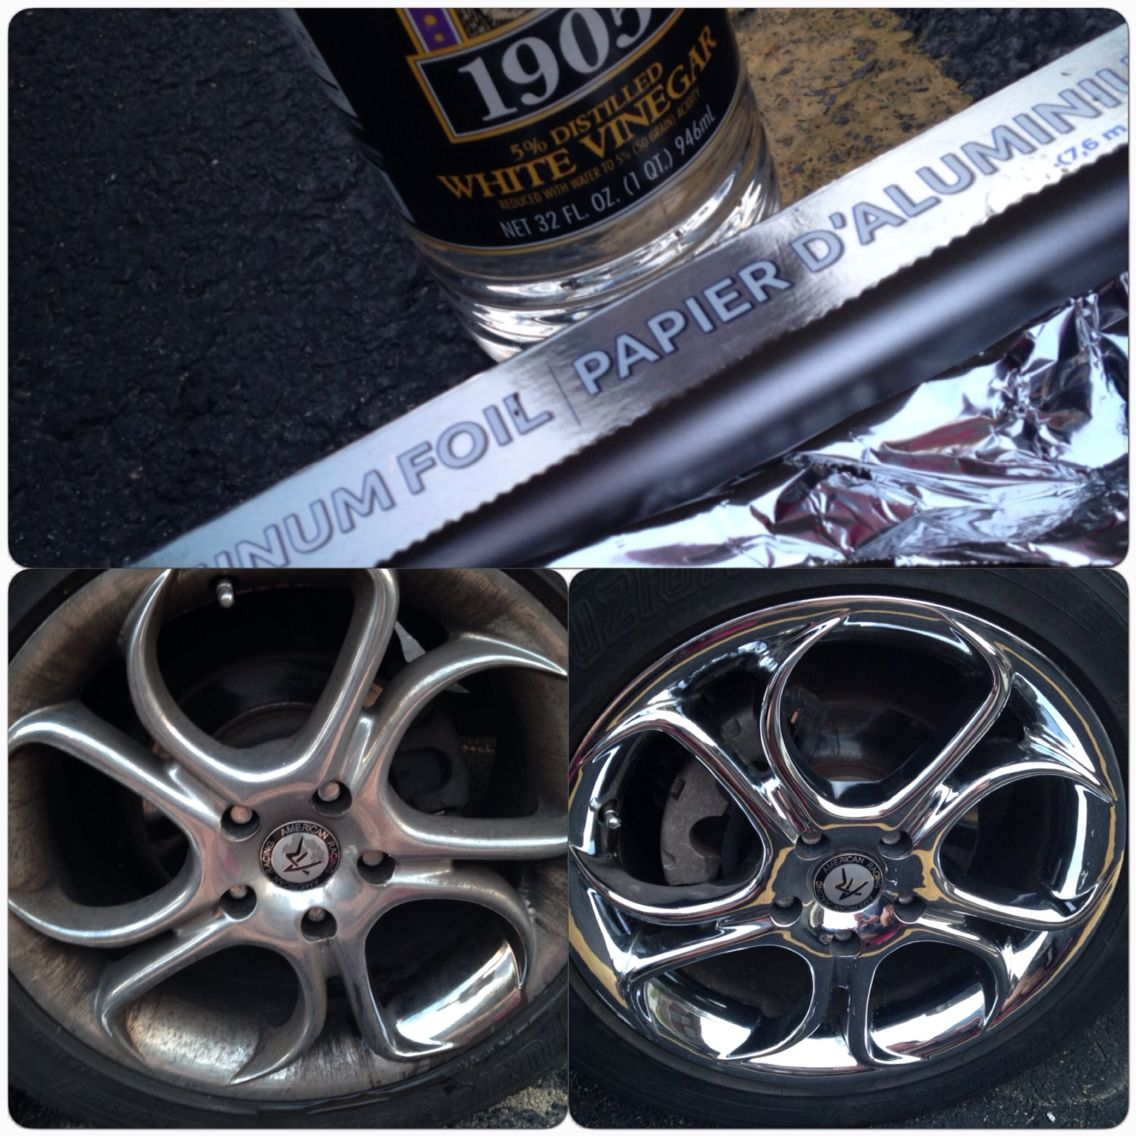 How to make rims shiny with aluminum foil and white